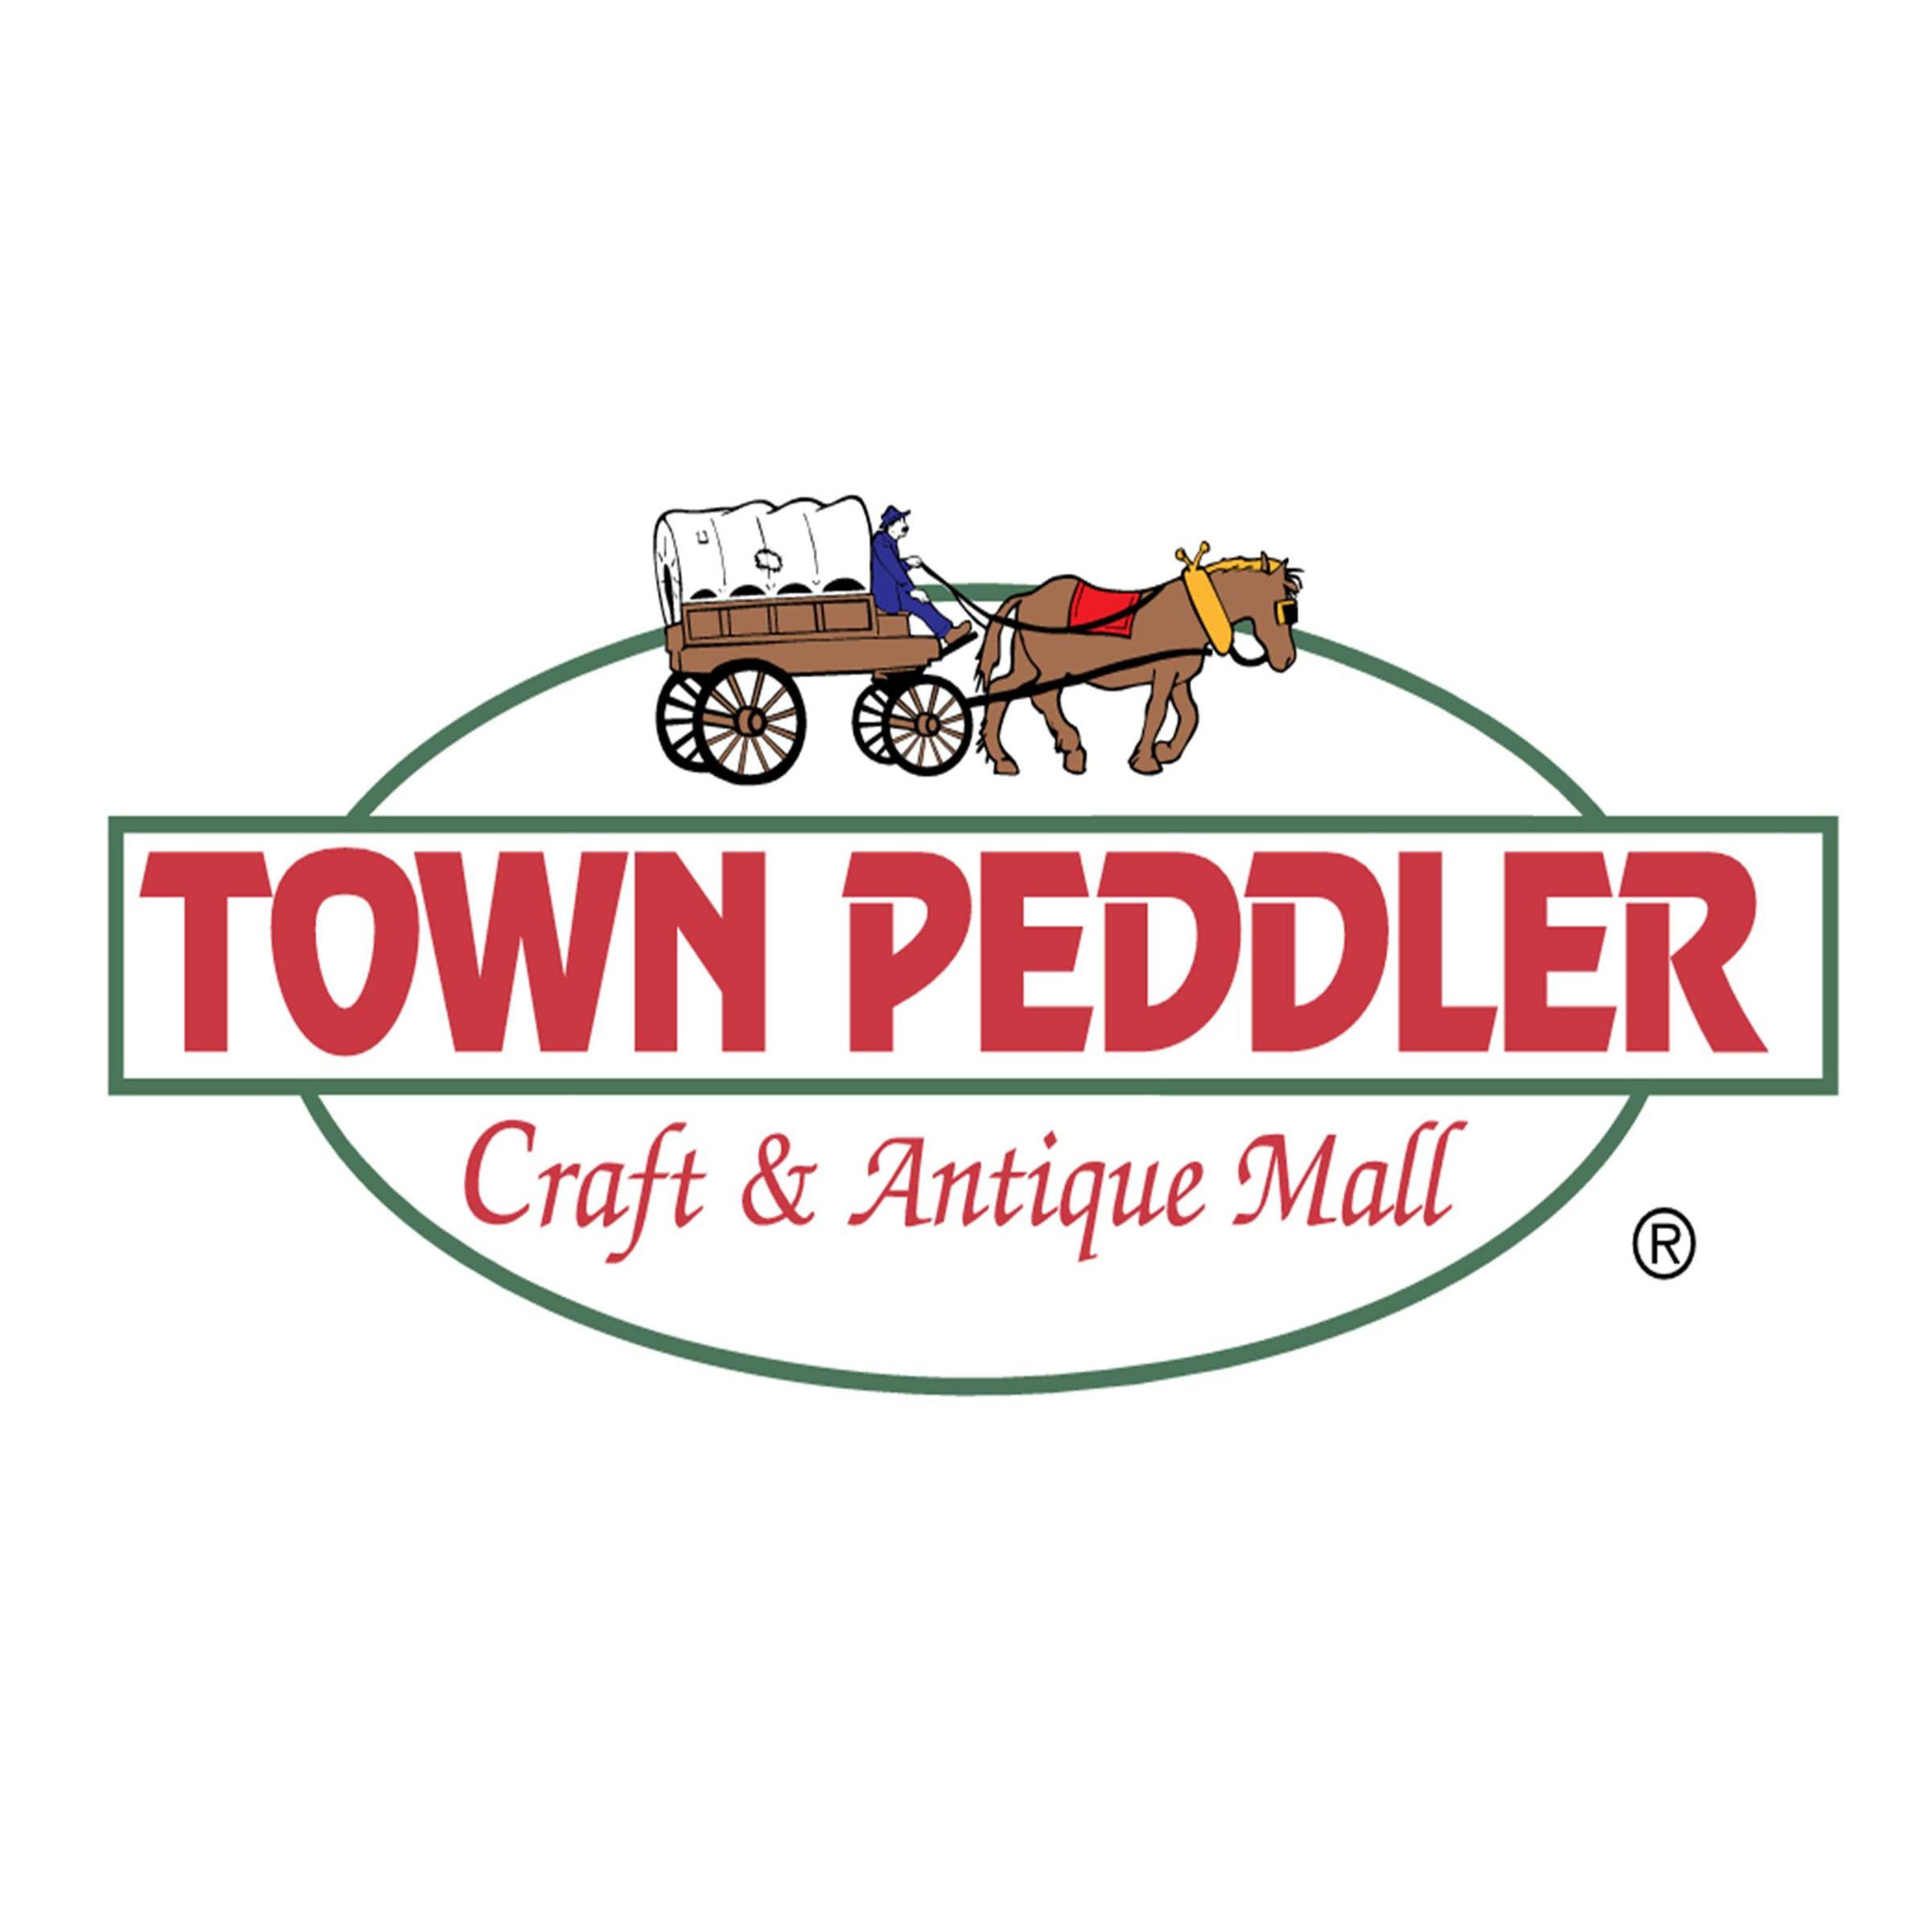 Livonia Furniture Stores Town Peddler Craft And Antique Mall In Livonia Mi 48150